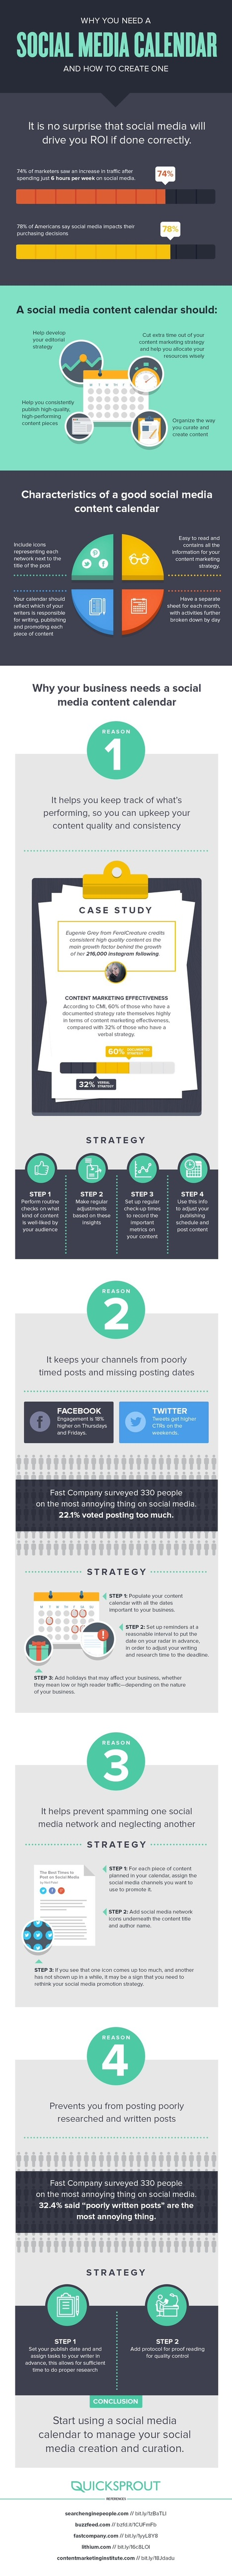 Why You Need a Social Media Calendar and How to Create One #infographic | MarketingHits | Scoop.it